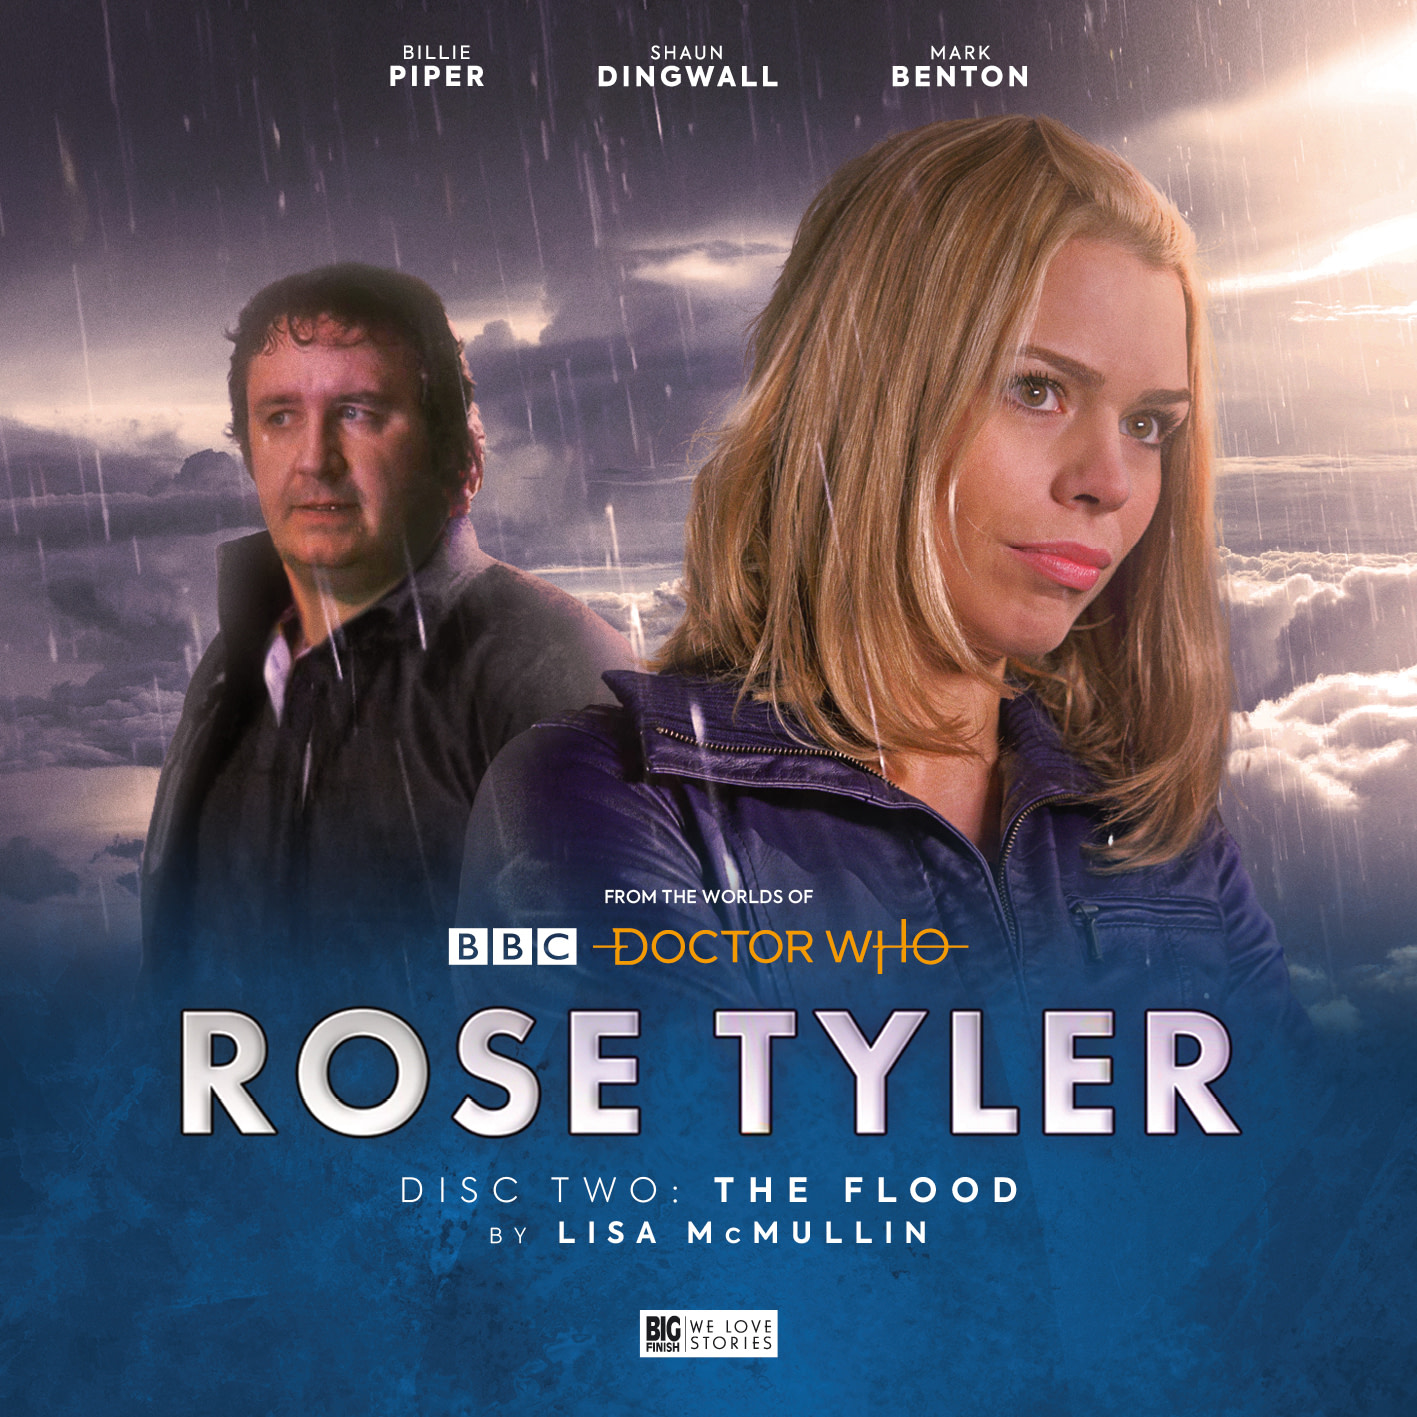 """""""Rose Tyler: The Dimension Cannon"""": Billie Piper and Co. Shine in """"Doctor Who"""" Spinoff [Review]"""